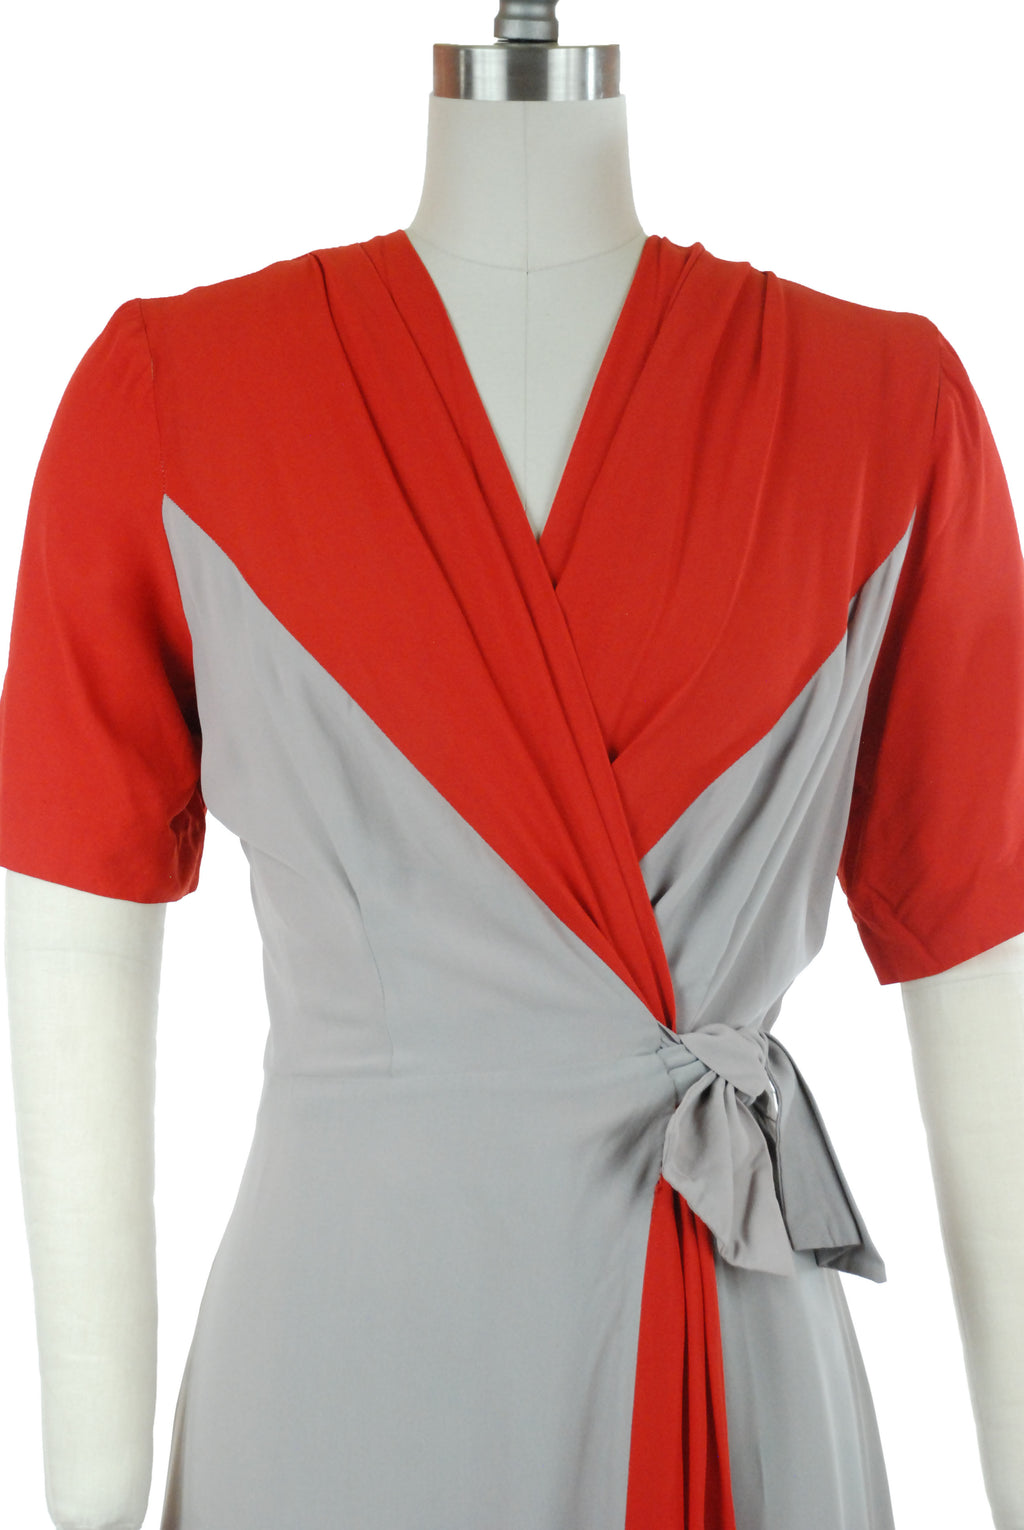 Killer 1940s Bold Two Tone Dress Gown in Grey and True Red